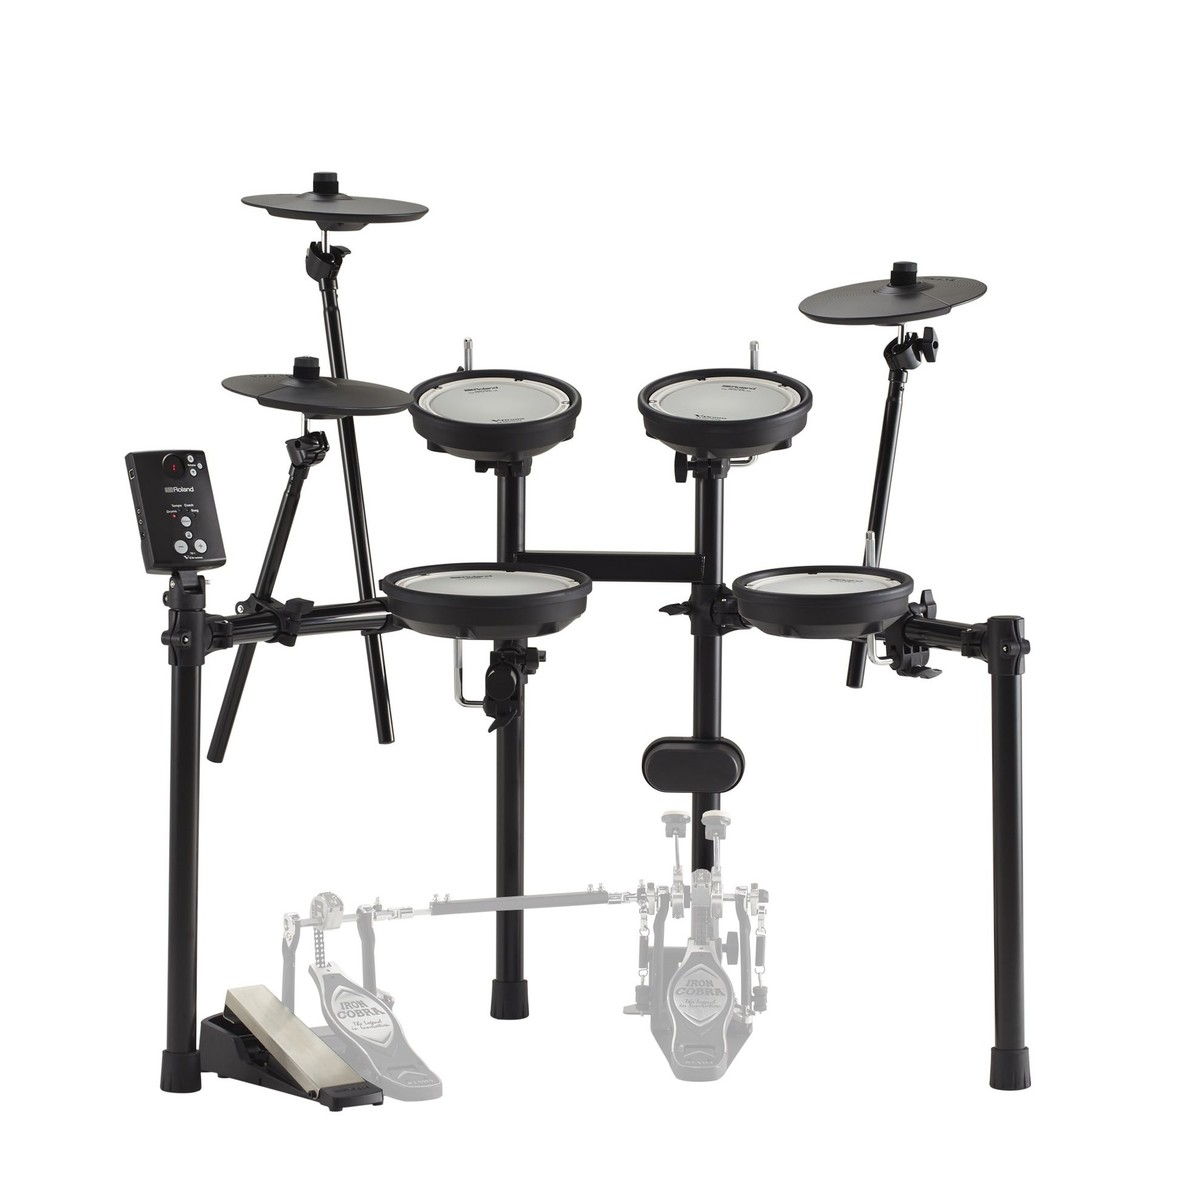 roland td 1dmk v drums electronic drum kit at gear4music. Black Bedroom Furniture Sets. Home Design Ideas